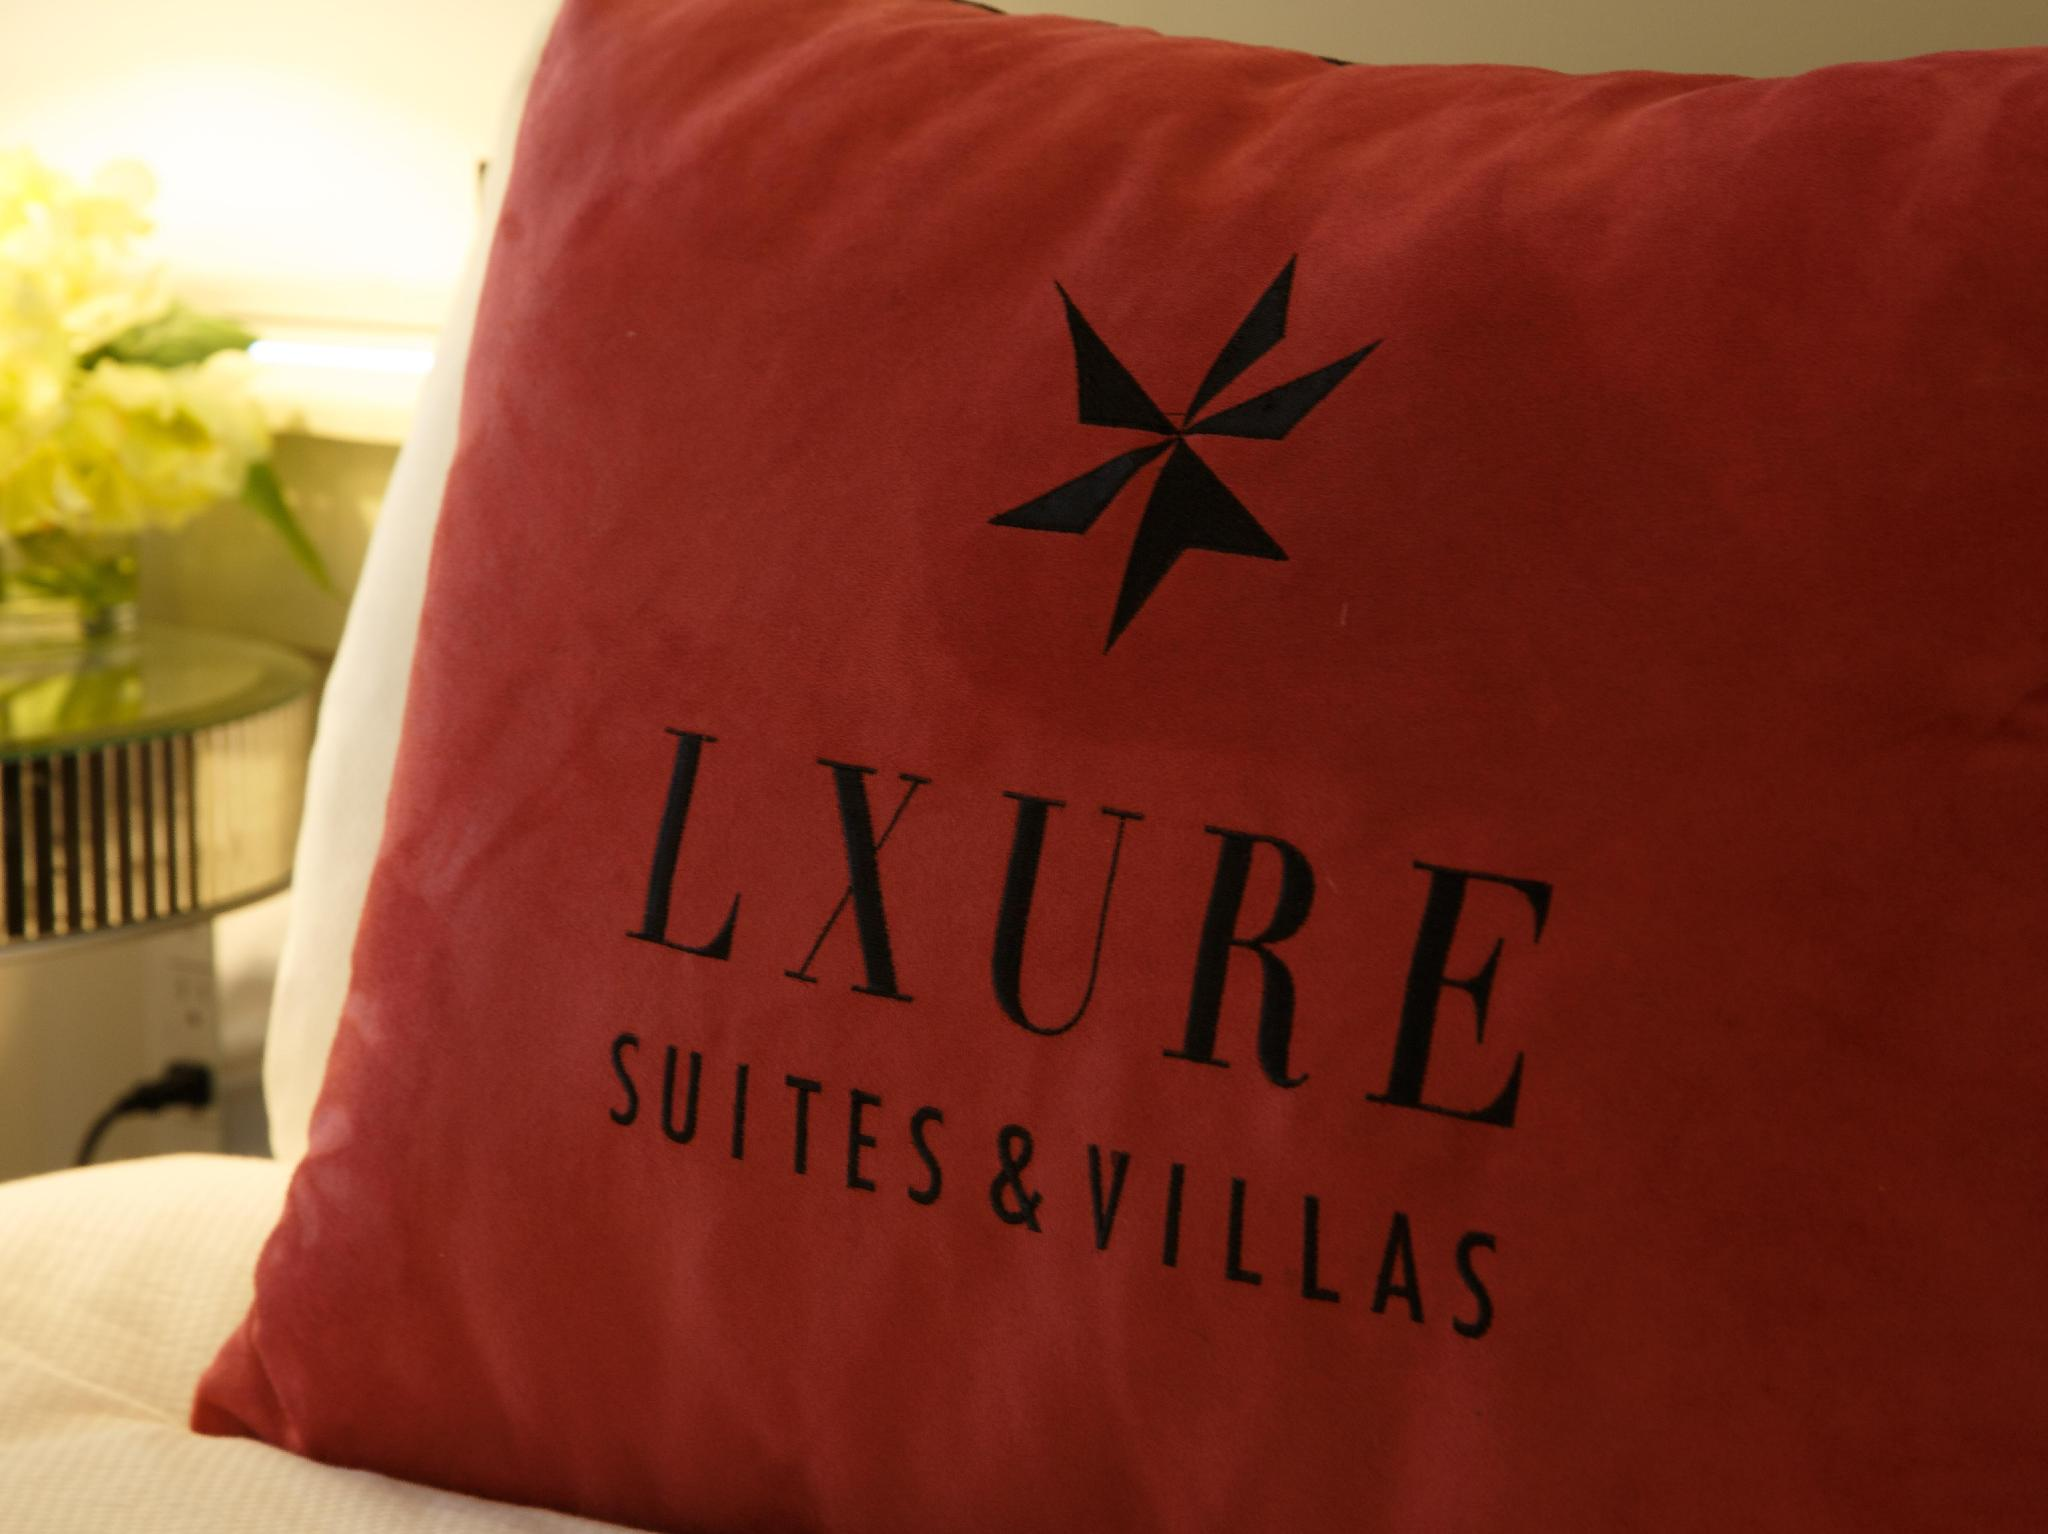 Lxure Hotel - Hotel and accommodation in Usa in New York (NY)